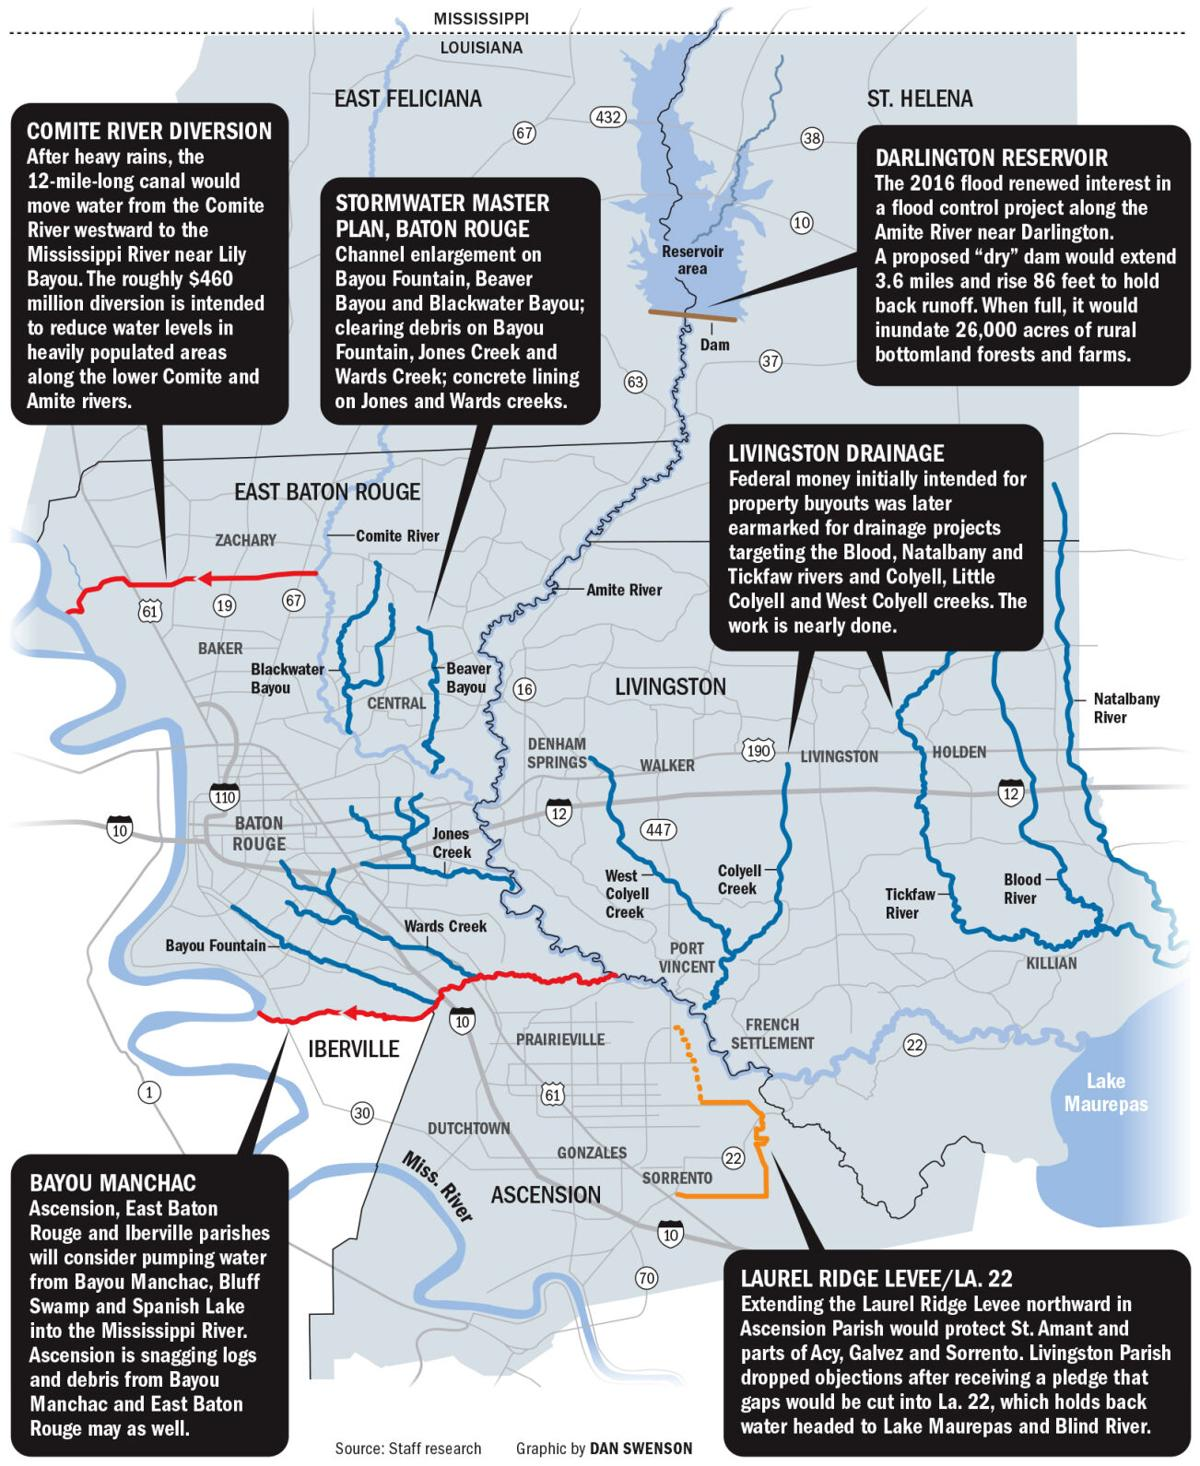 080821 BR area flood control projects